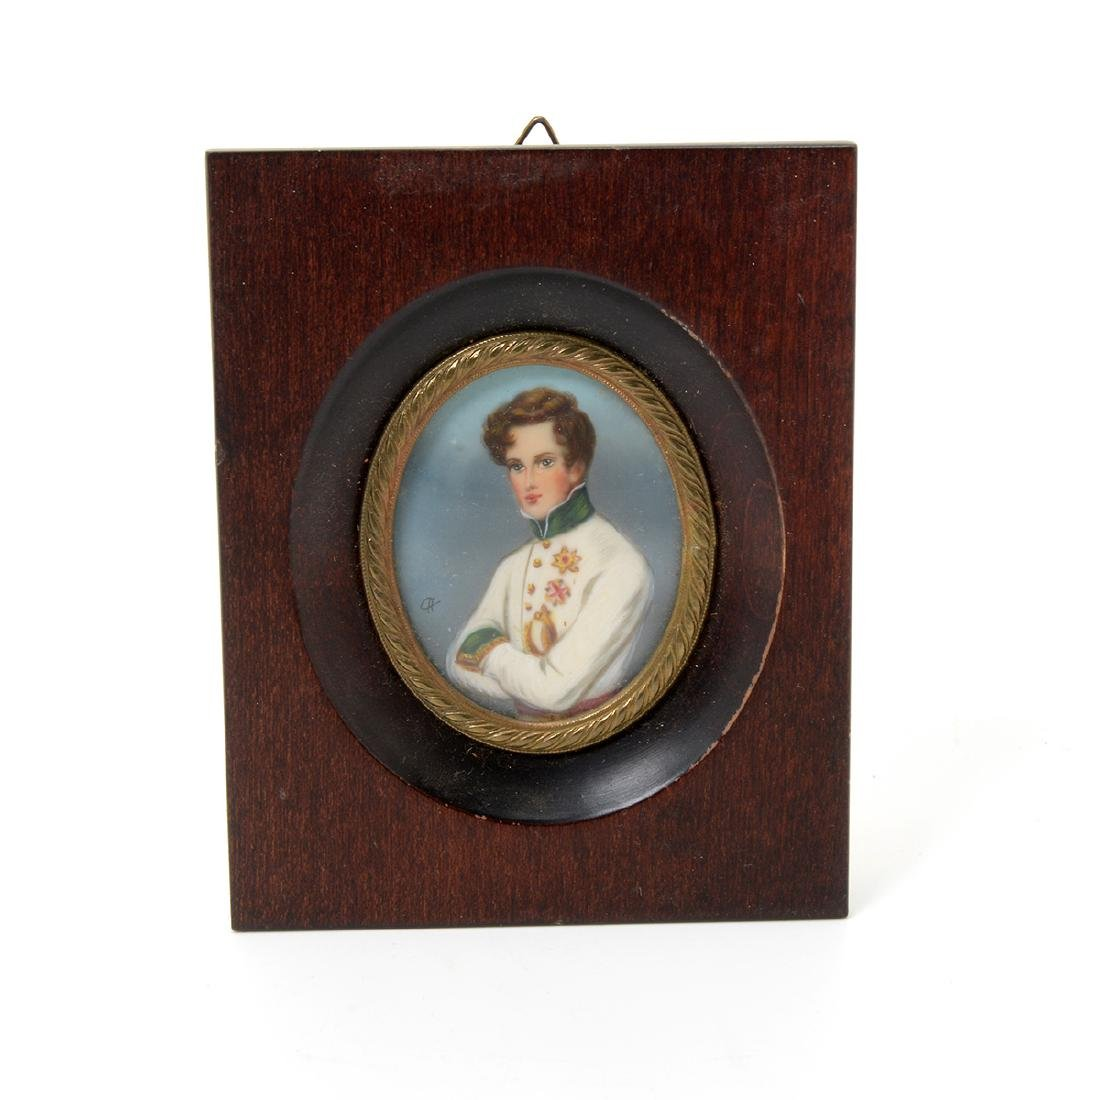 Nine Miniature Portraits of Men Including Blue Boy - 6